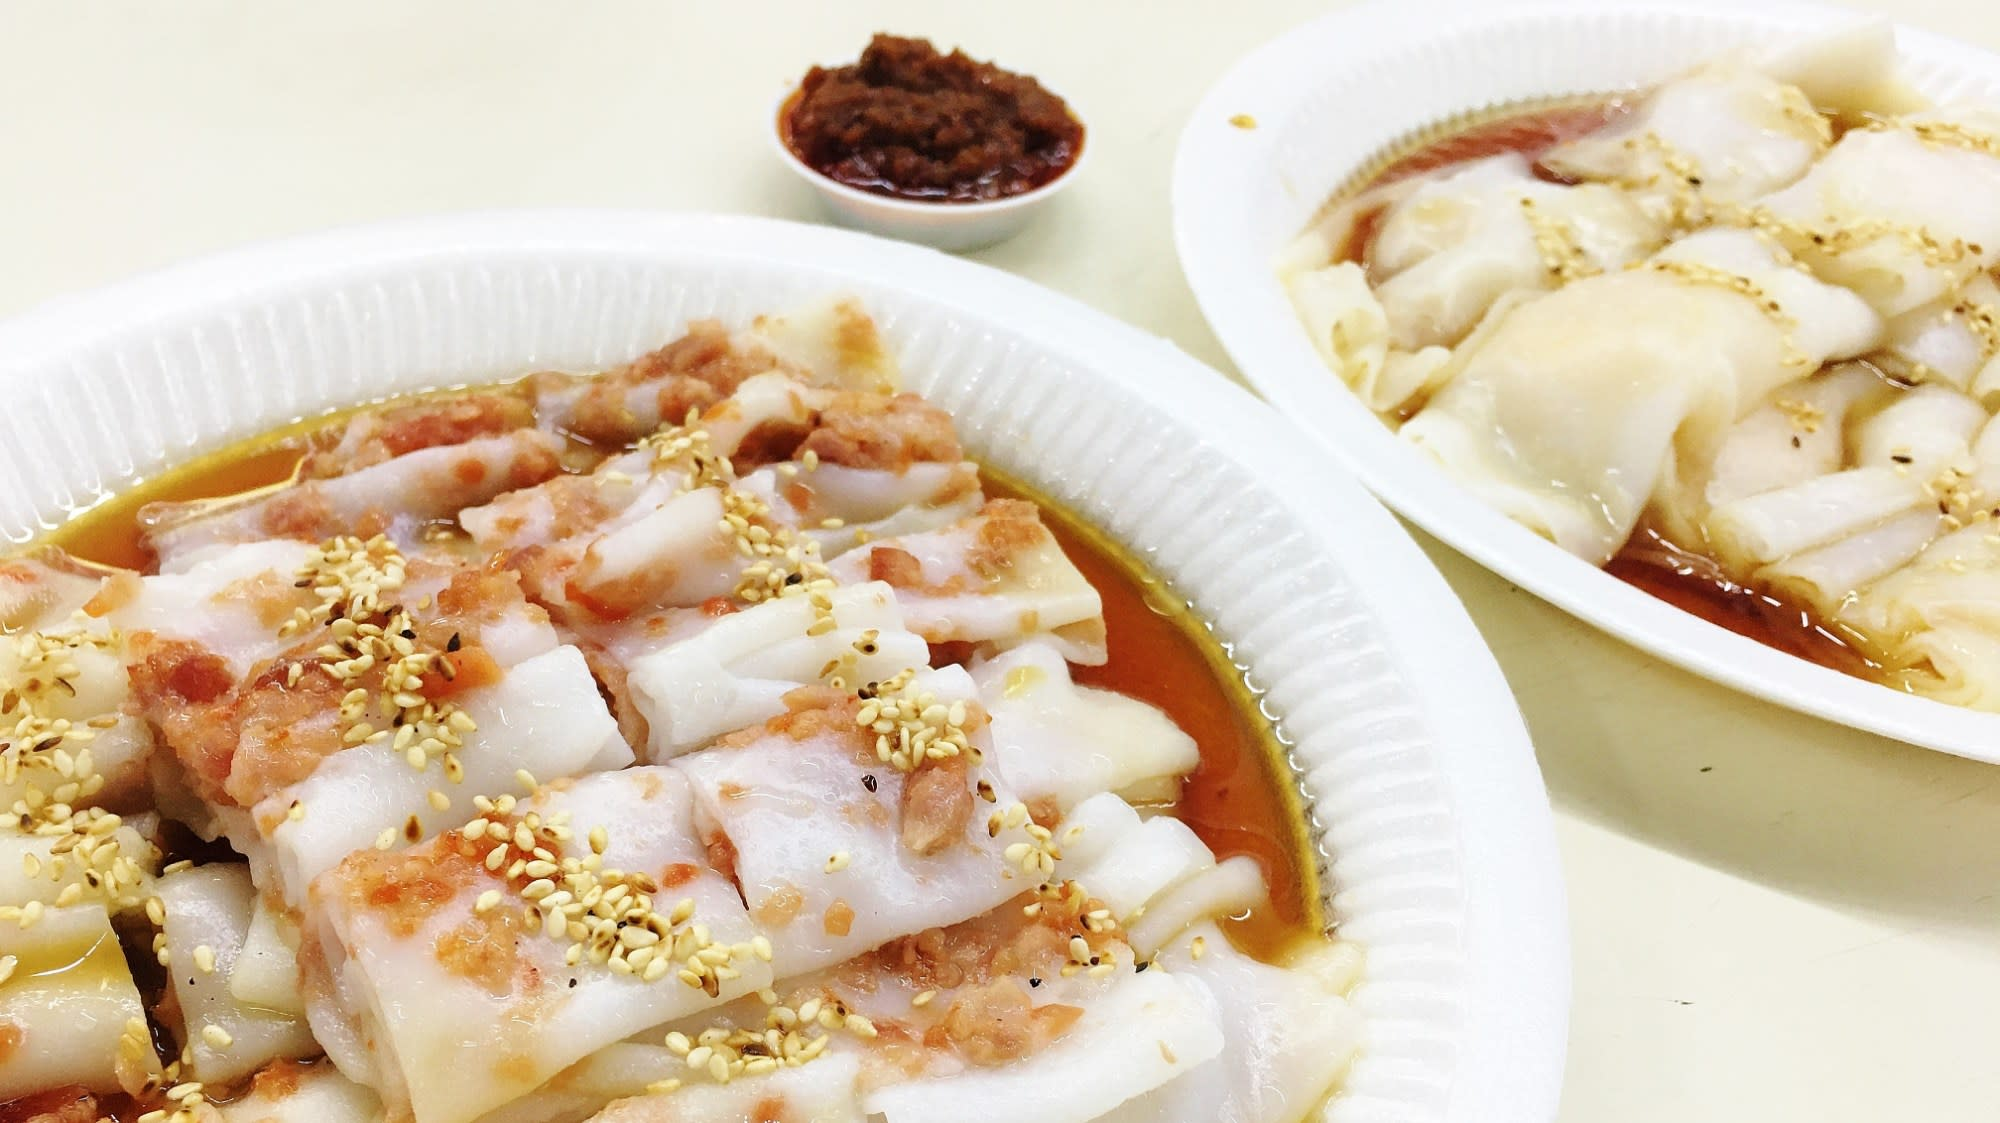 The perfect chee cheong fun at Pek Kio hawker centre | CNA Lifestyle